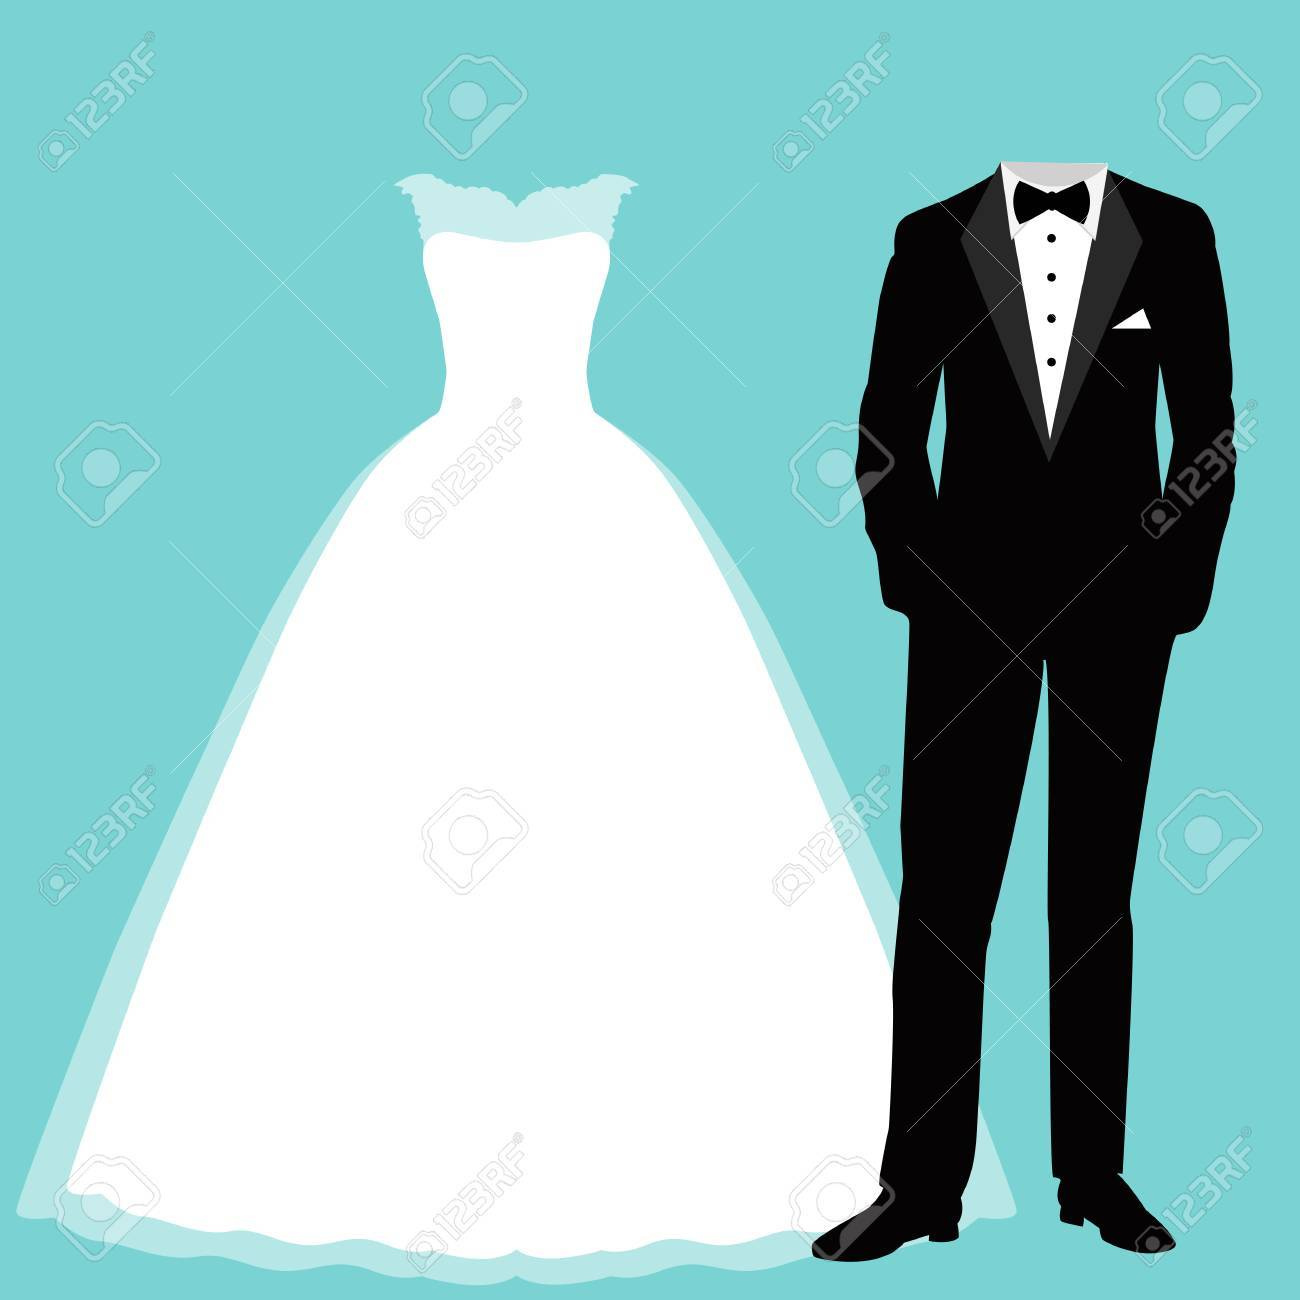 Wedding Card With The Clothes Of The Bride And Groom. Beautiful ...